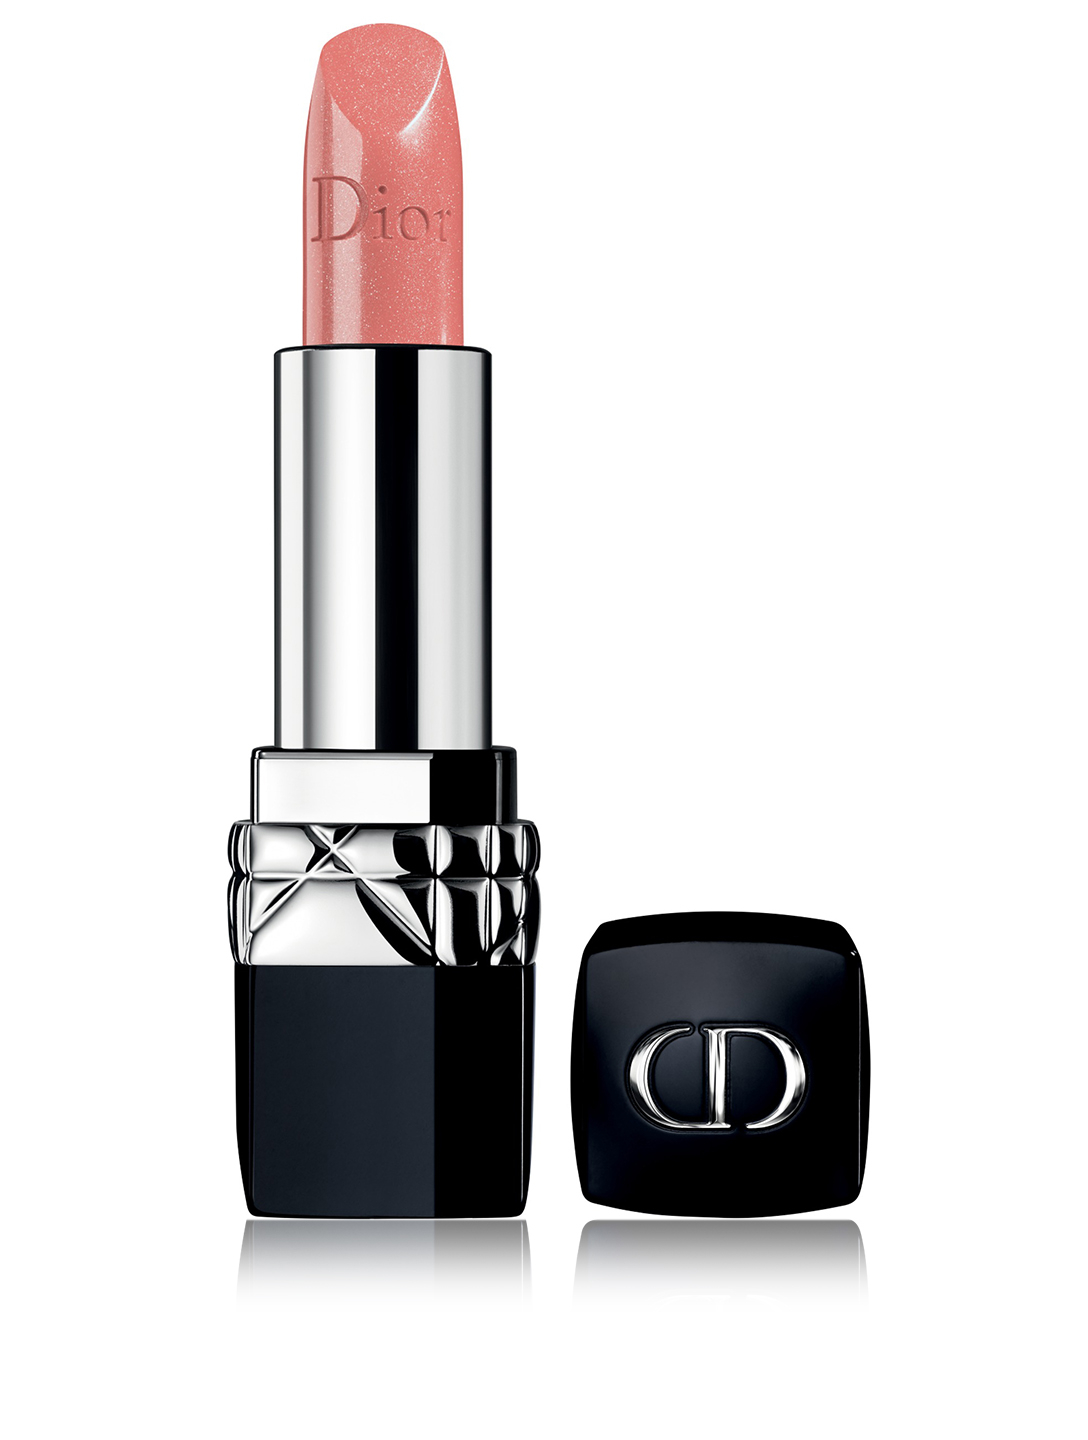 DIOR Rouge Dior Limited Edition Couture Colour Lipstick Beauty Pink